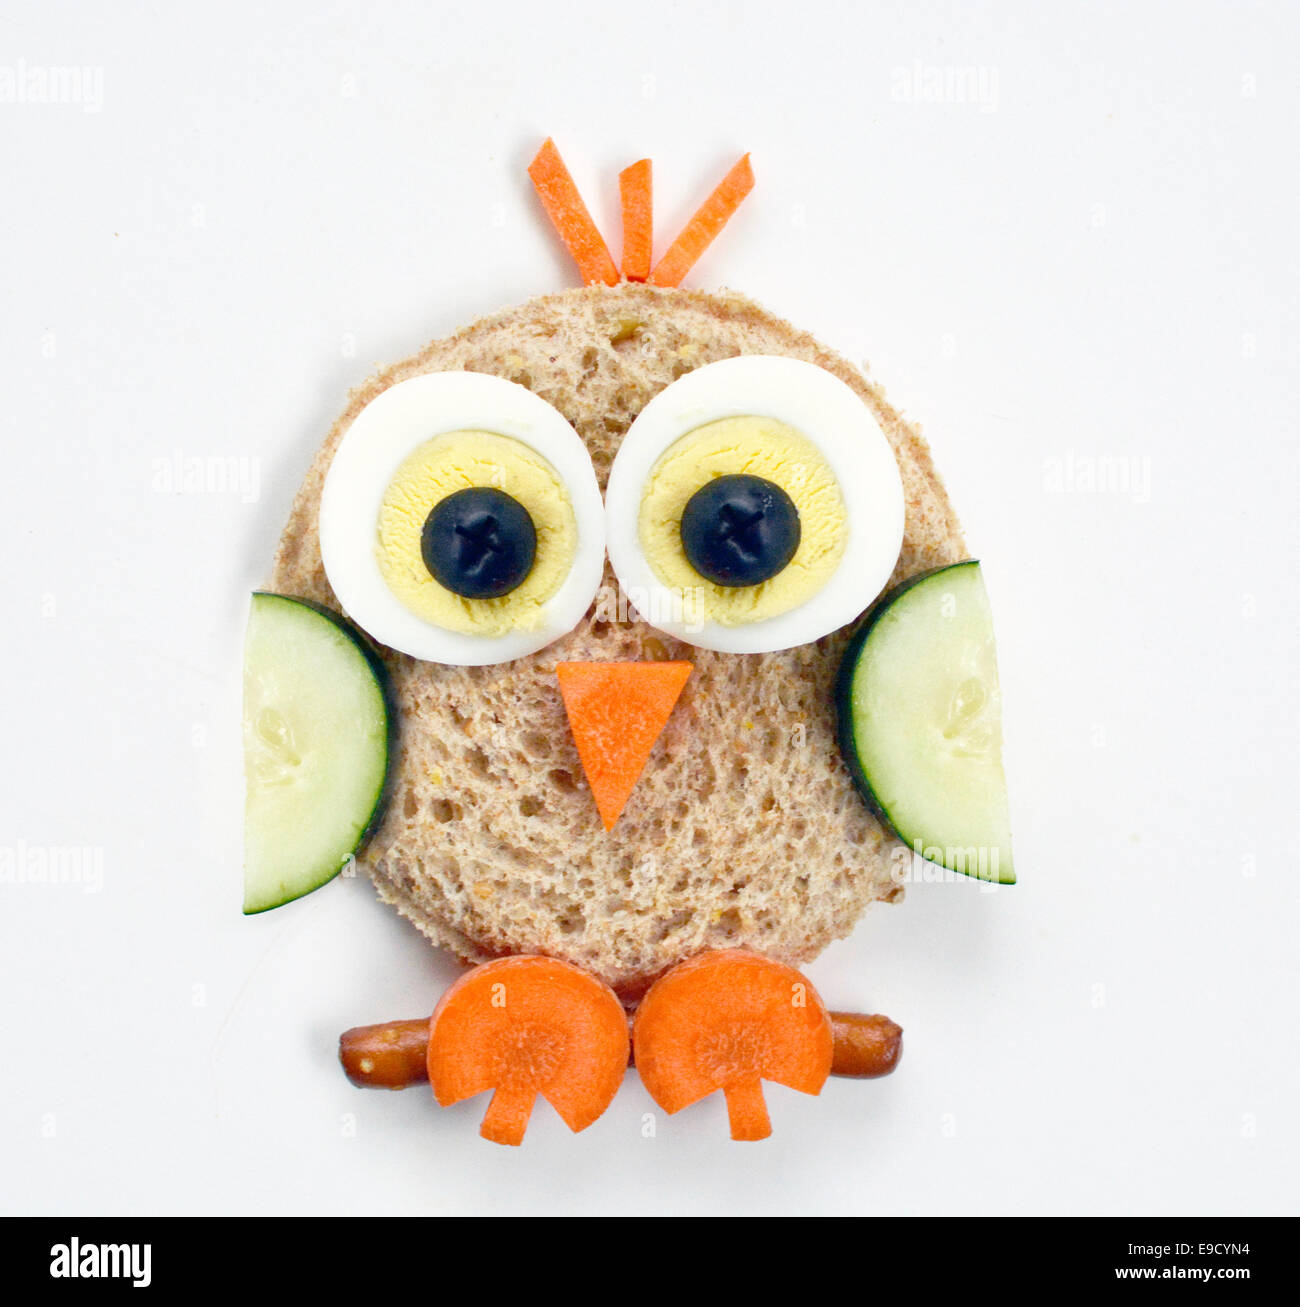 Owl food art - Stock Image